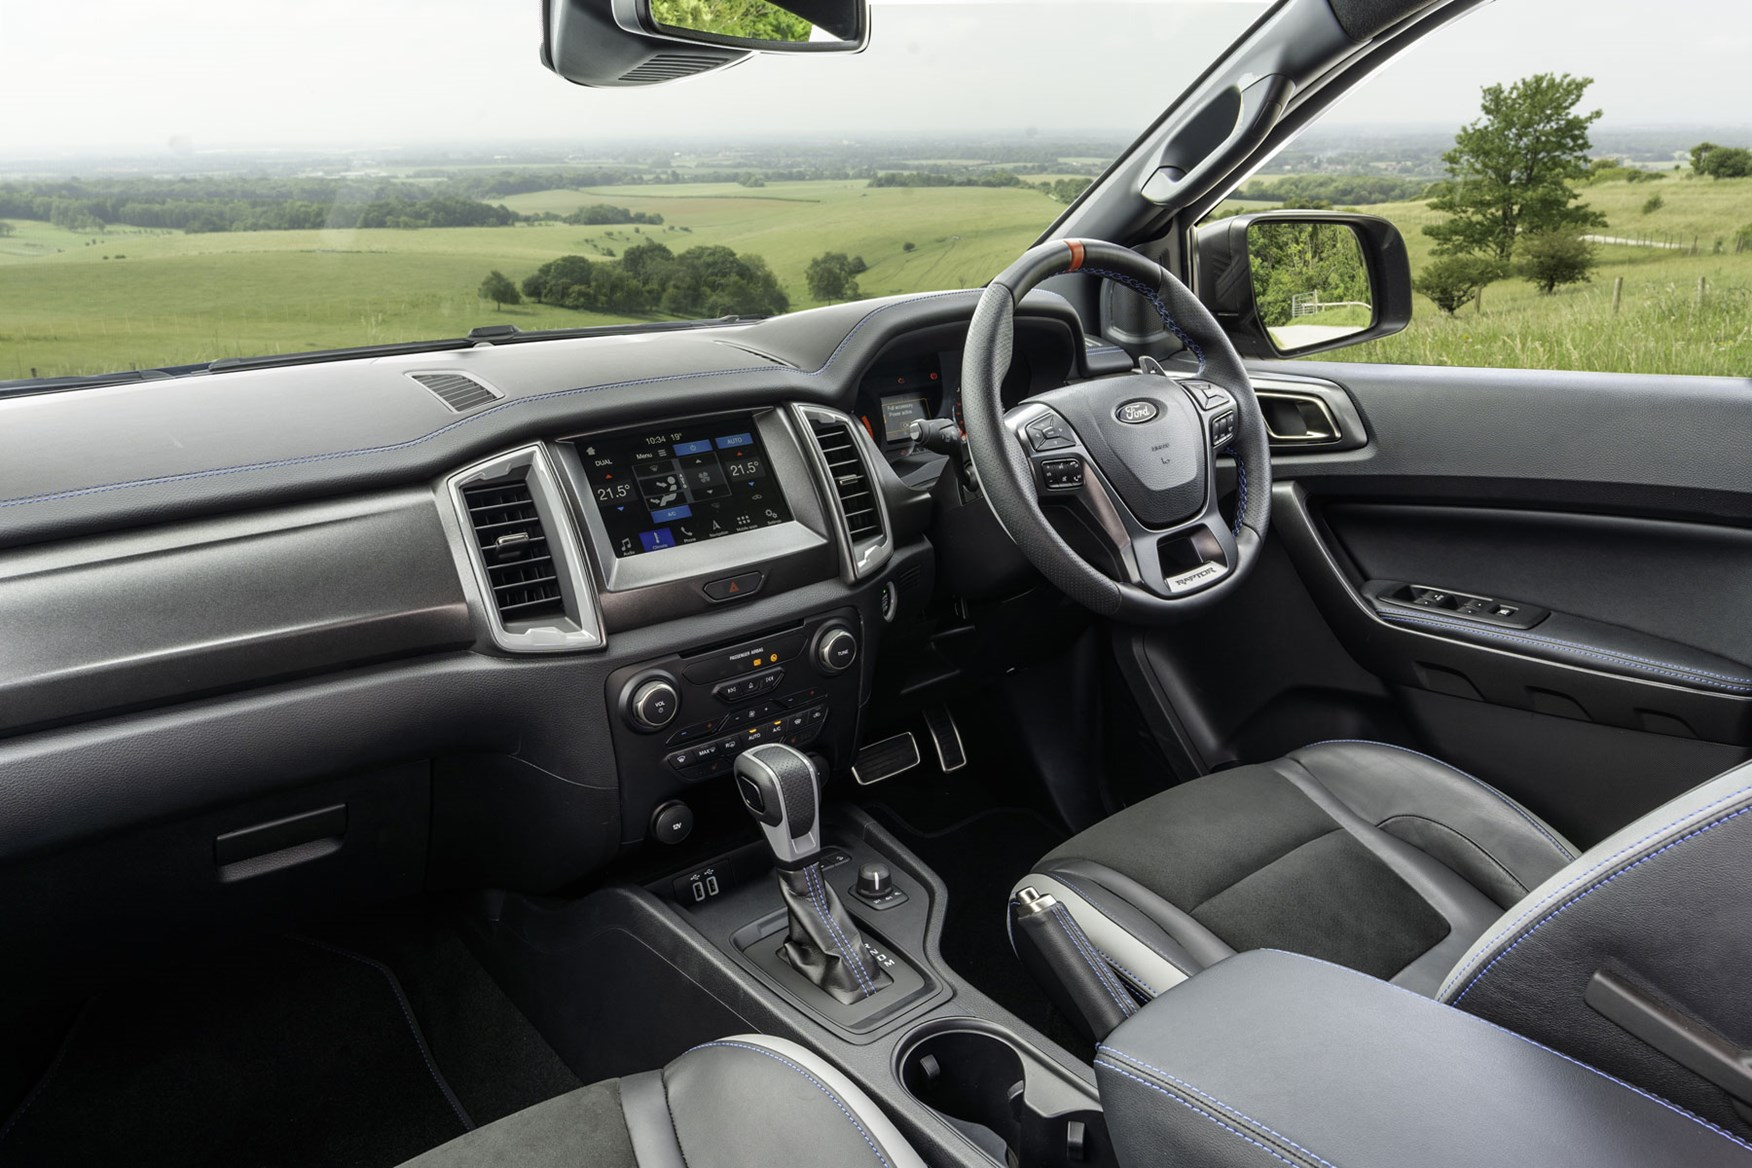 Ford Ranger Raptor review - right-hand drive cab interior, steering wheel, dashboard 2020